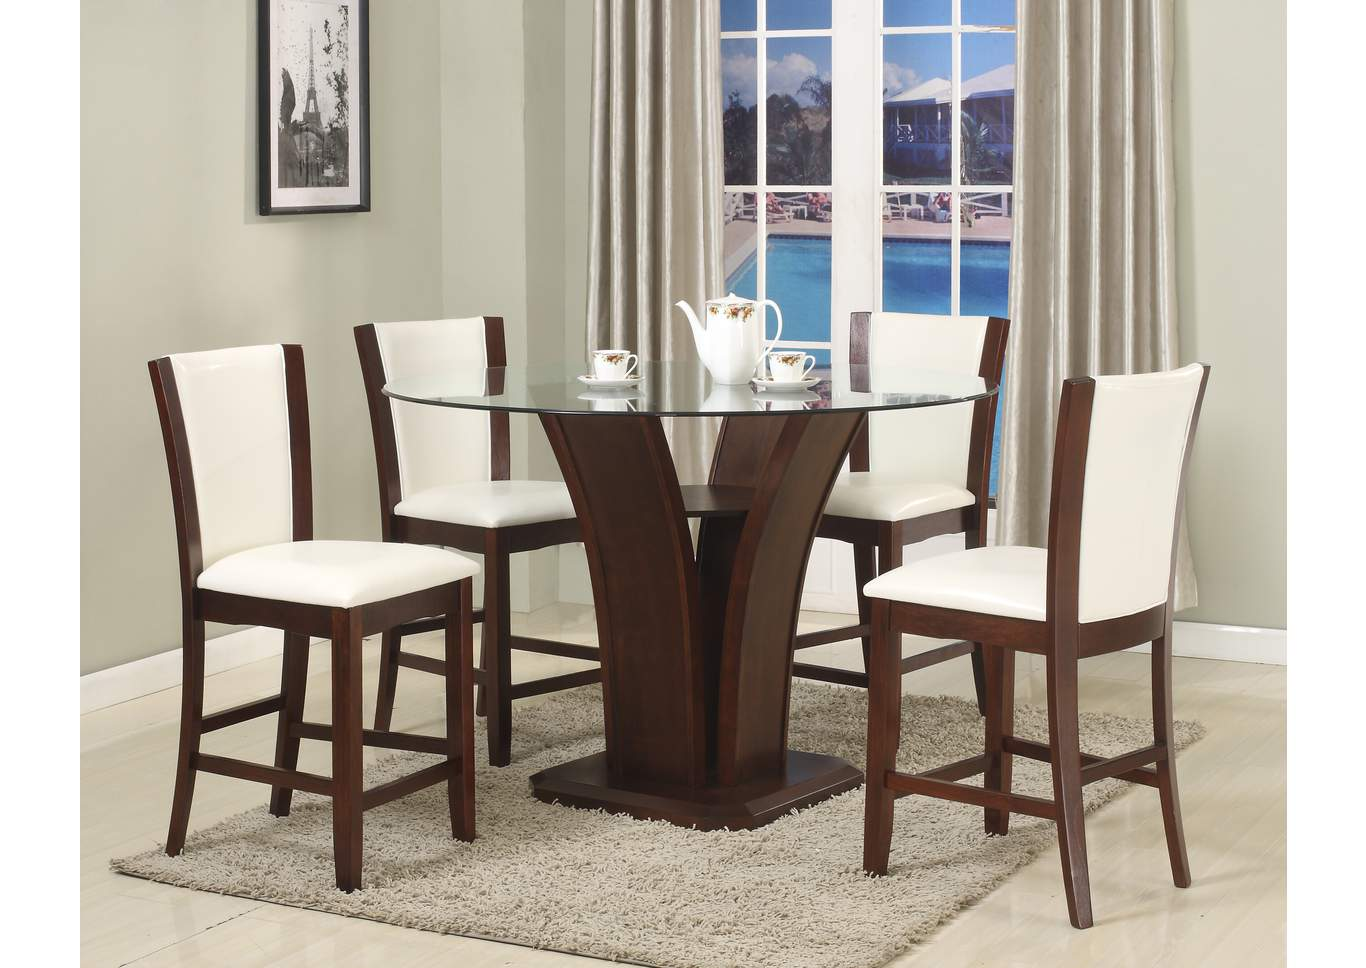 counter height dining room table w 4 white counter height chairs